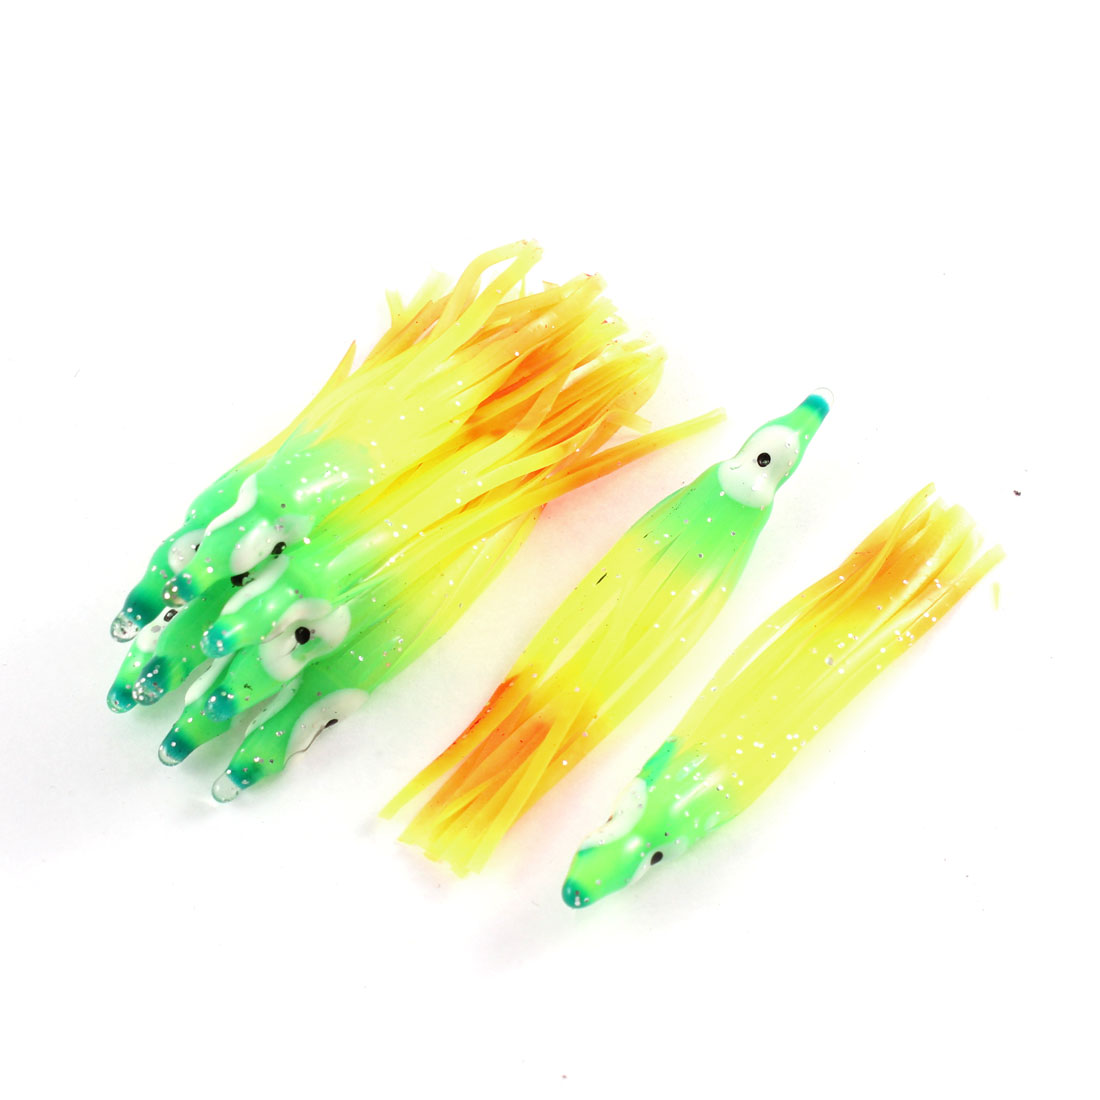 10pcs Yellow Orange Green Silicone Emulational Octopus Design Fishing Baits Lure Fish Tackle Tool for Fisherman